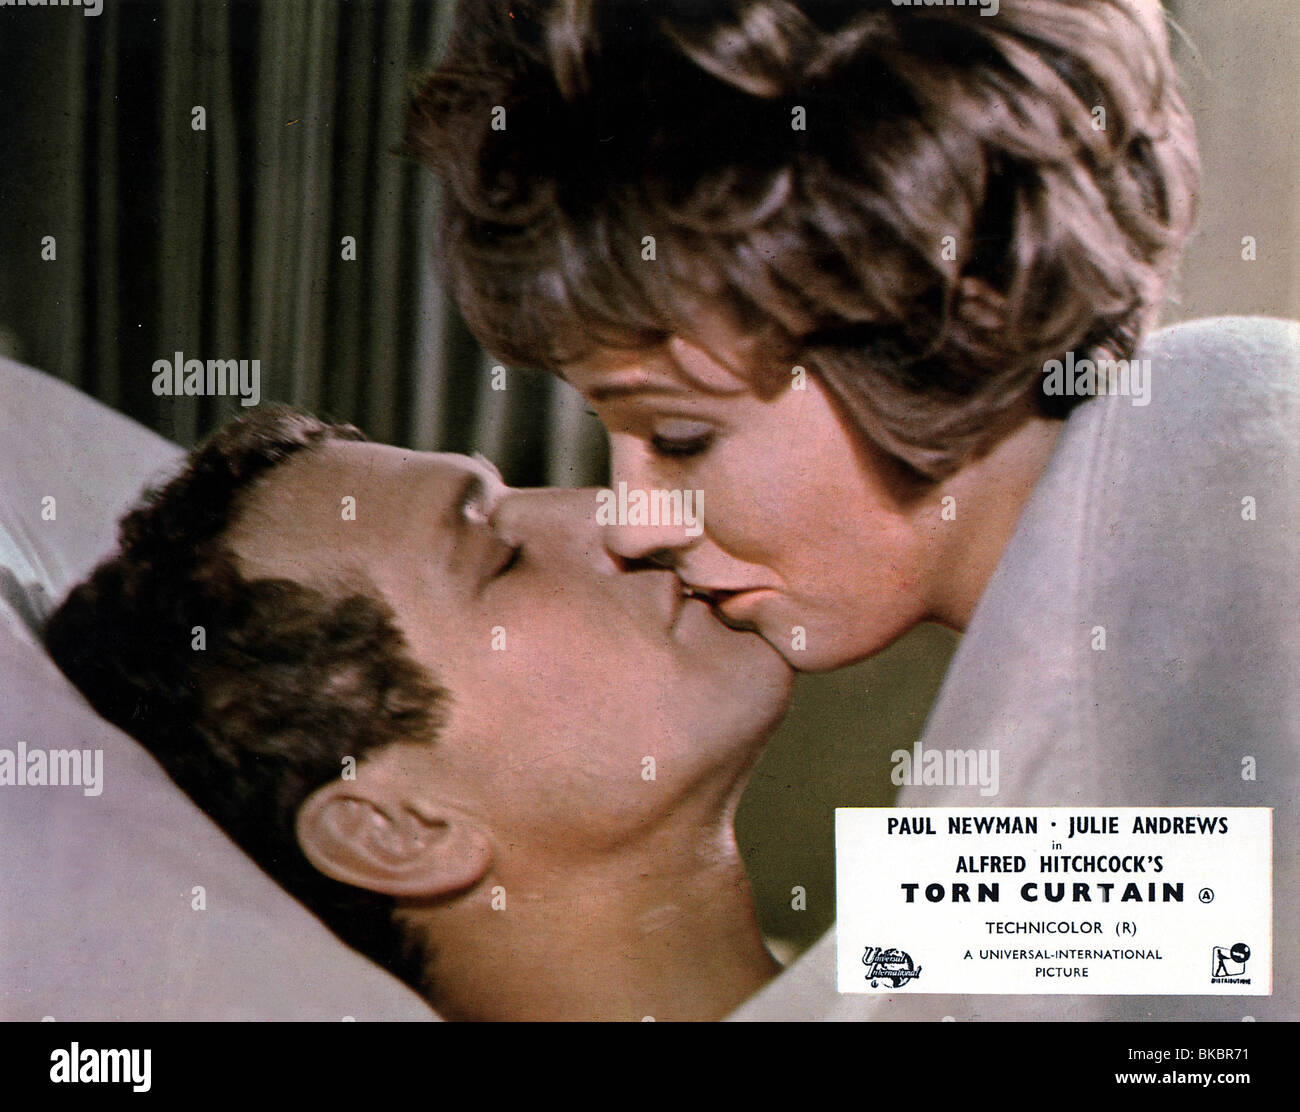 Torn curtain julie andrews - Stock Photo Torn Curtain 1966 Paul Newman Julie Andrews Trct 001foh